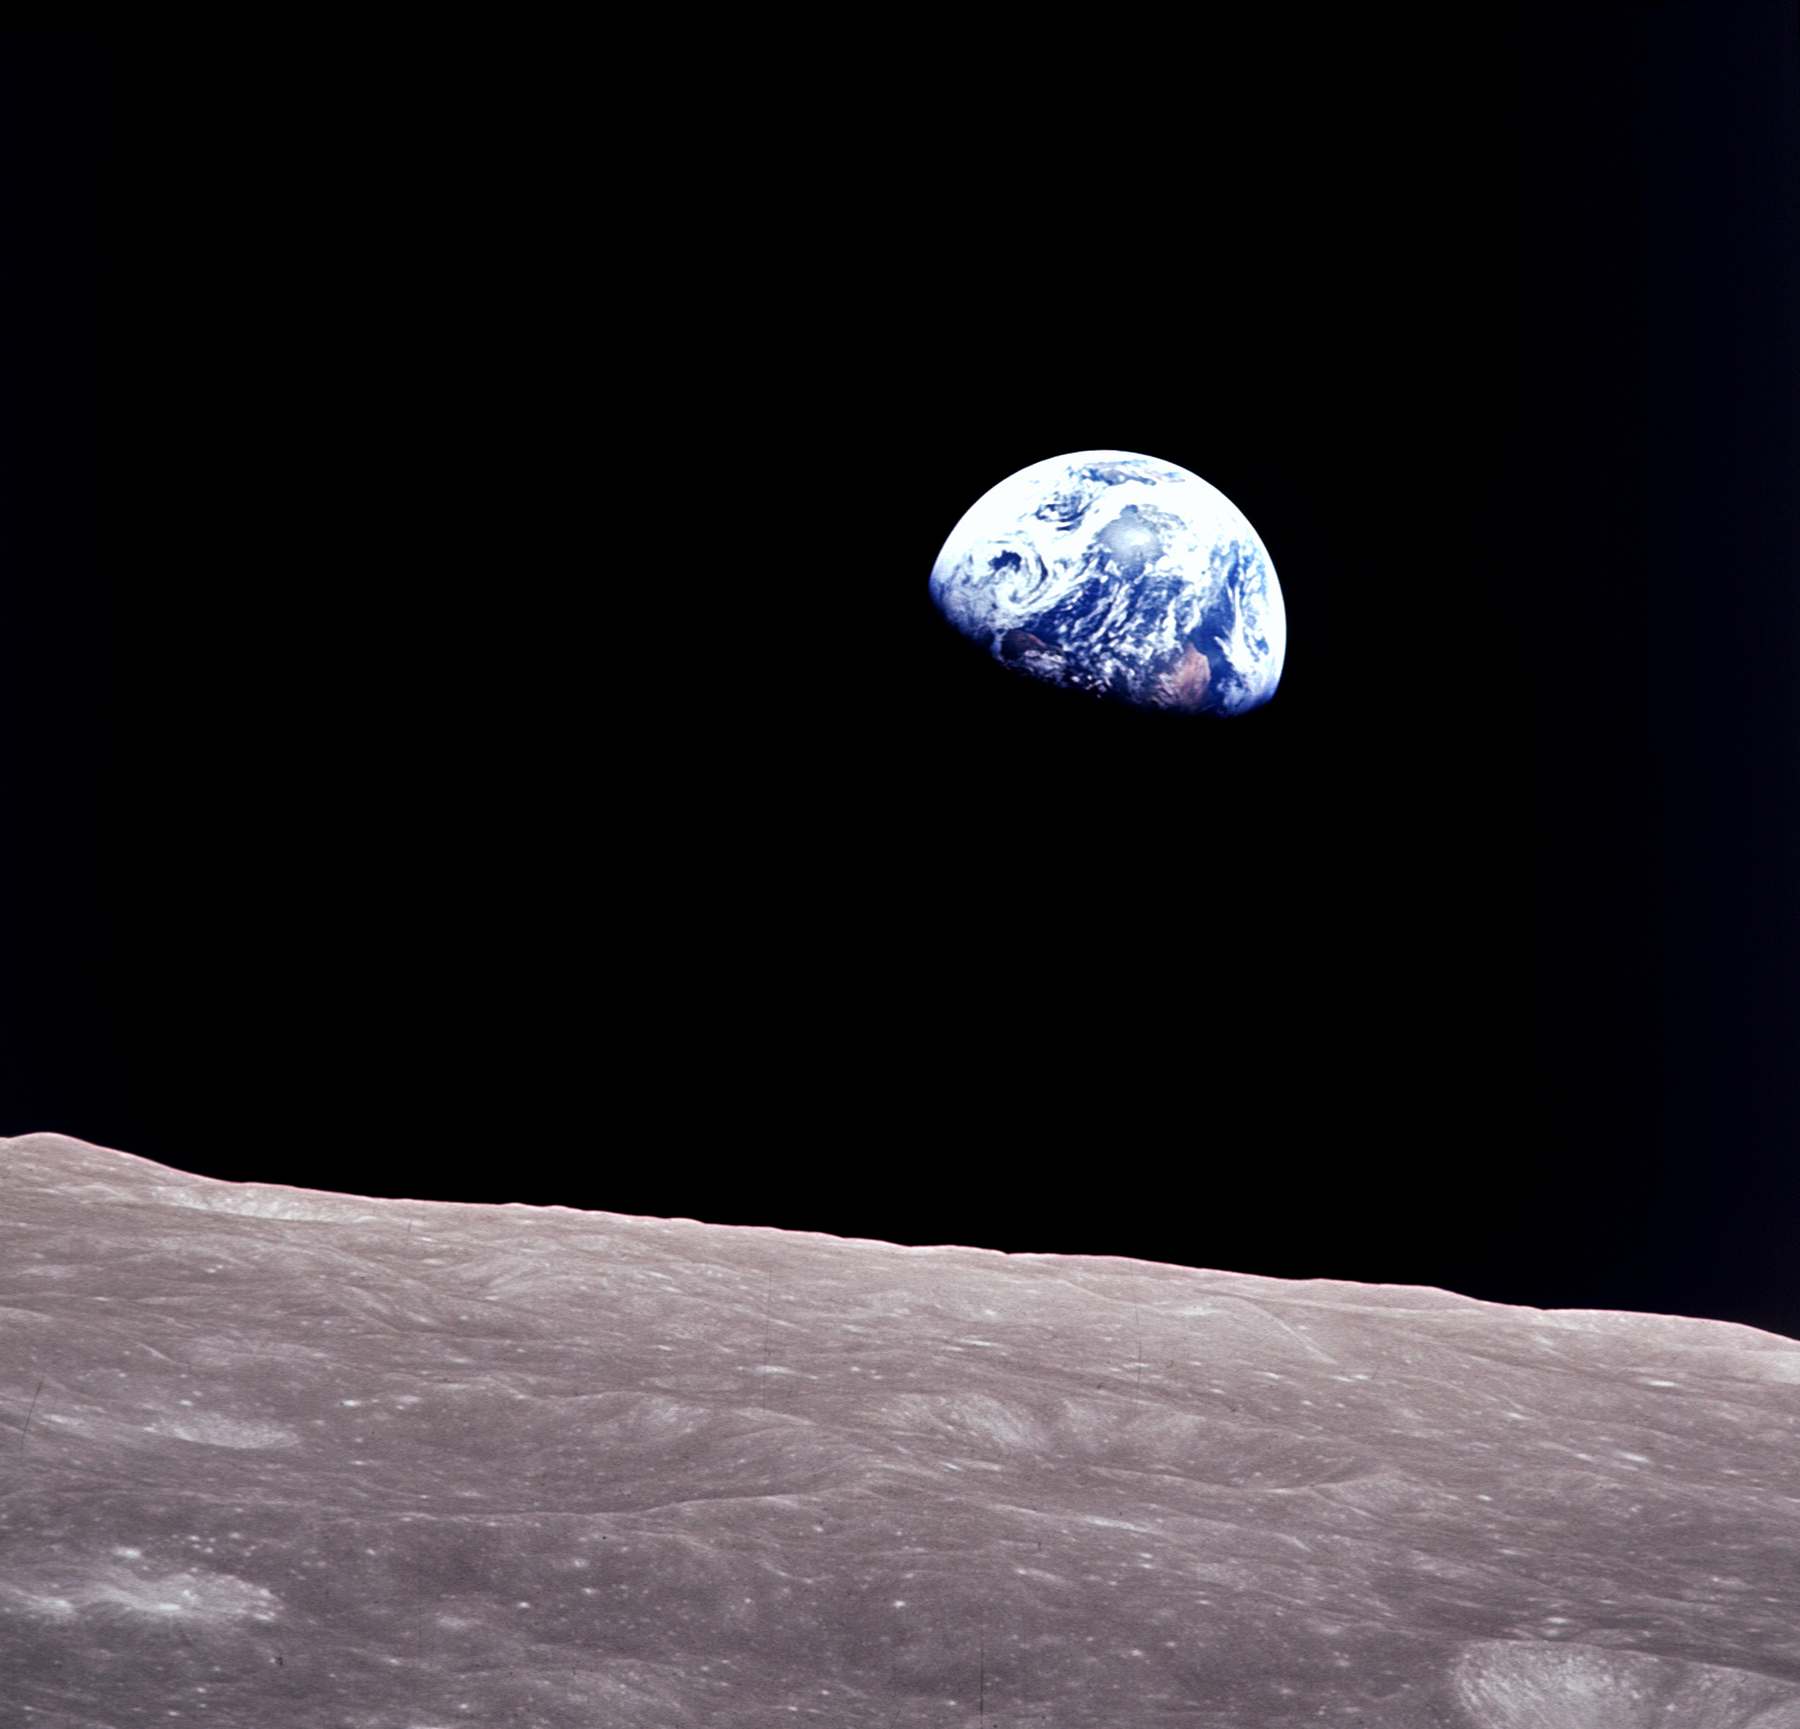 apollo08_earthrise.jpg